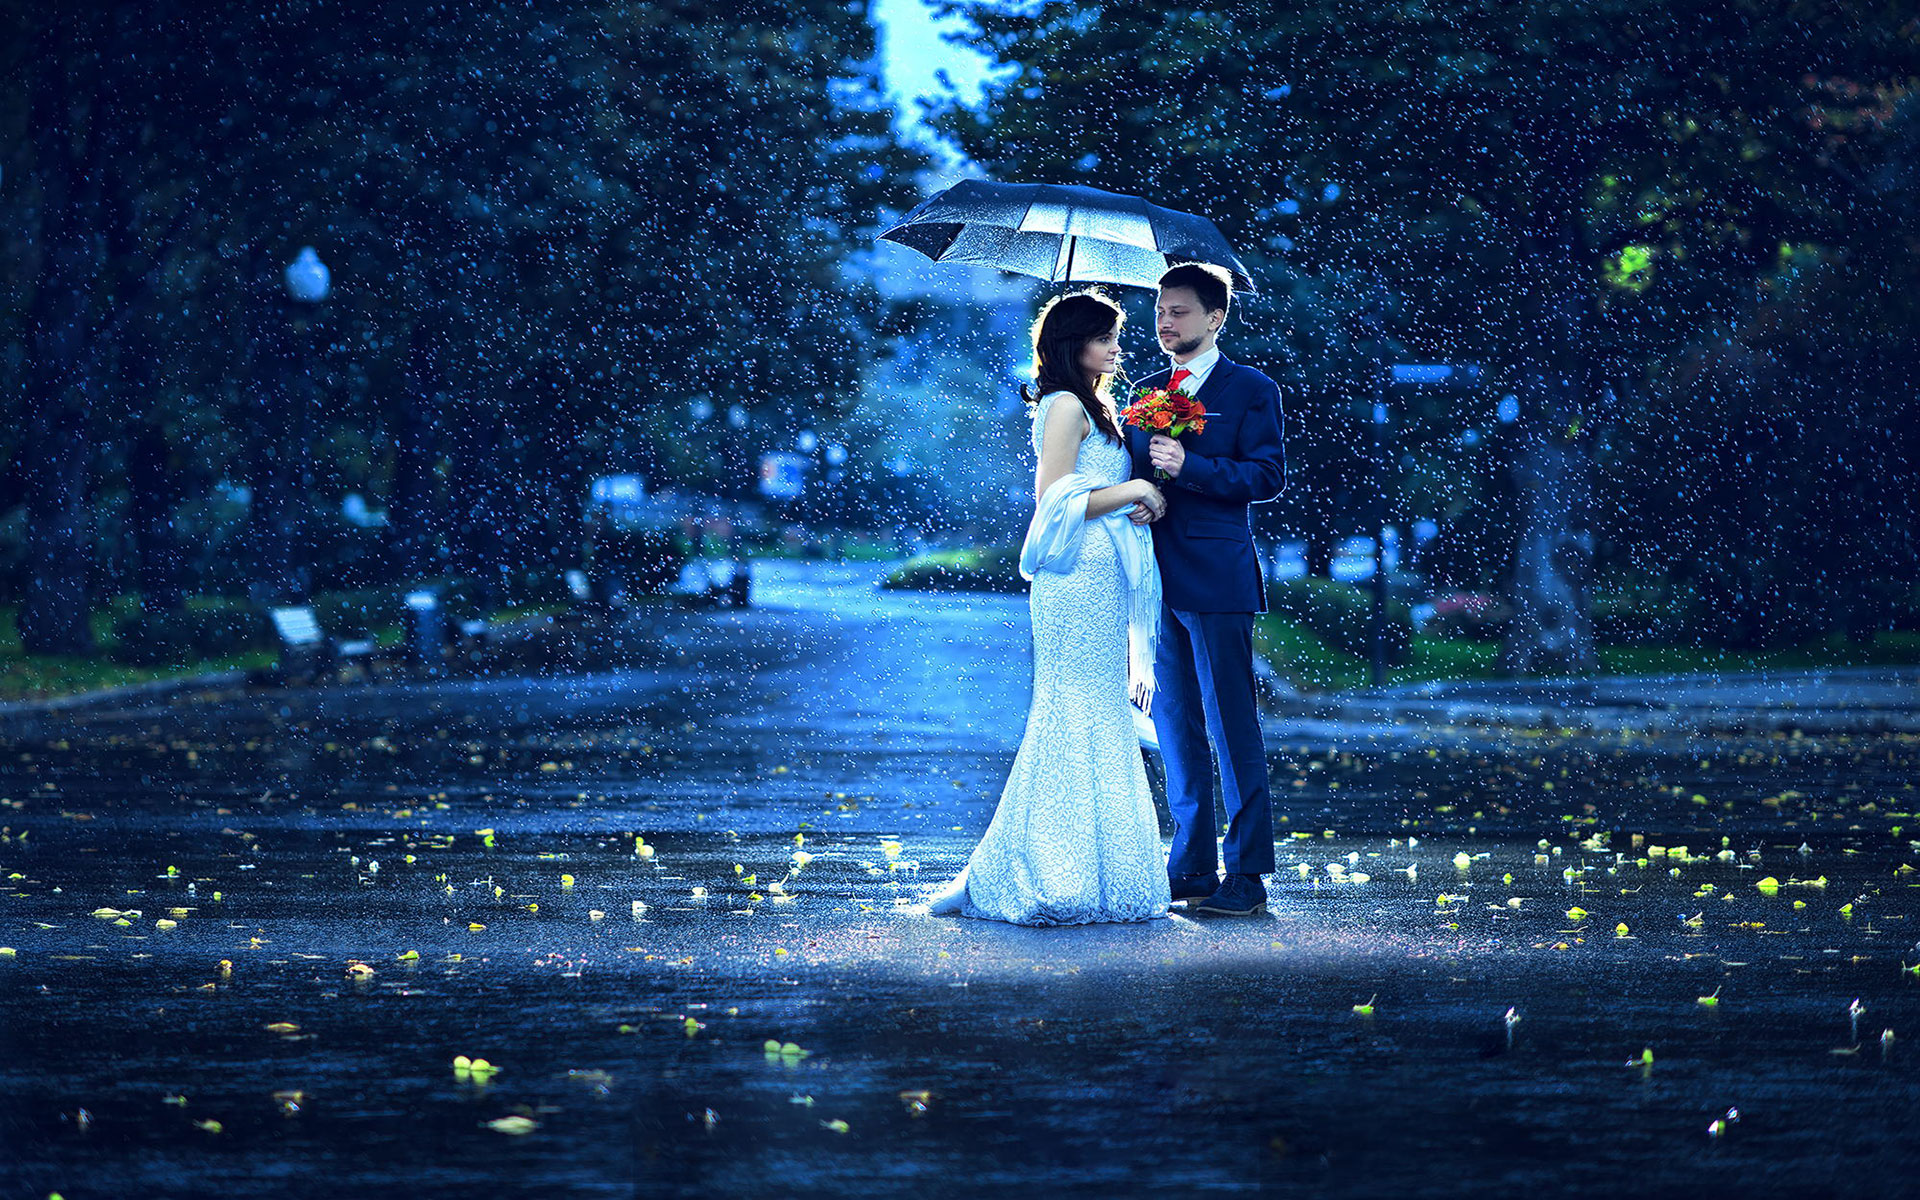 Love Couple Wallpaper Hd 1080p Free Download Hd Love Pic: 20+ Love Couple's Romance In The Rain Wallpapers